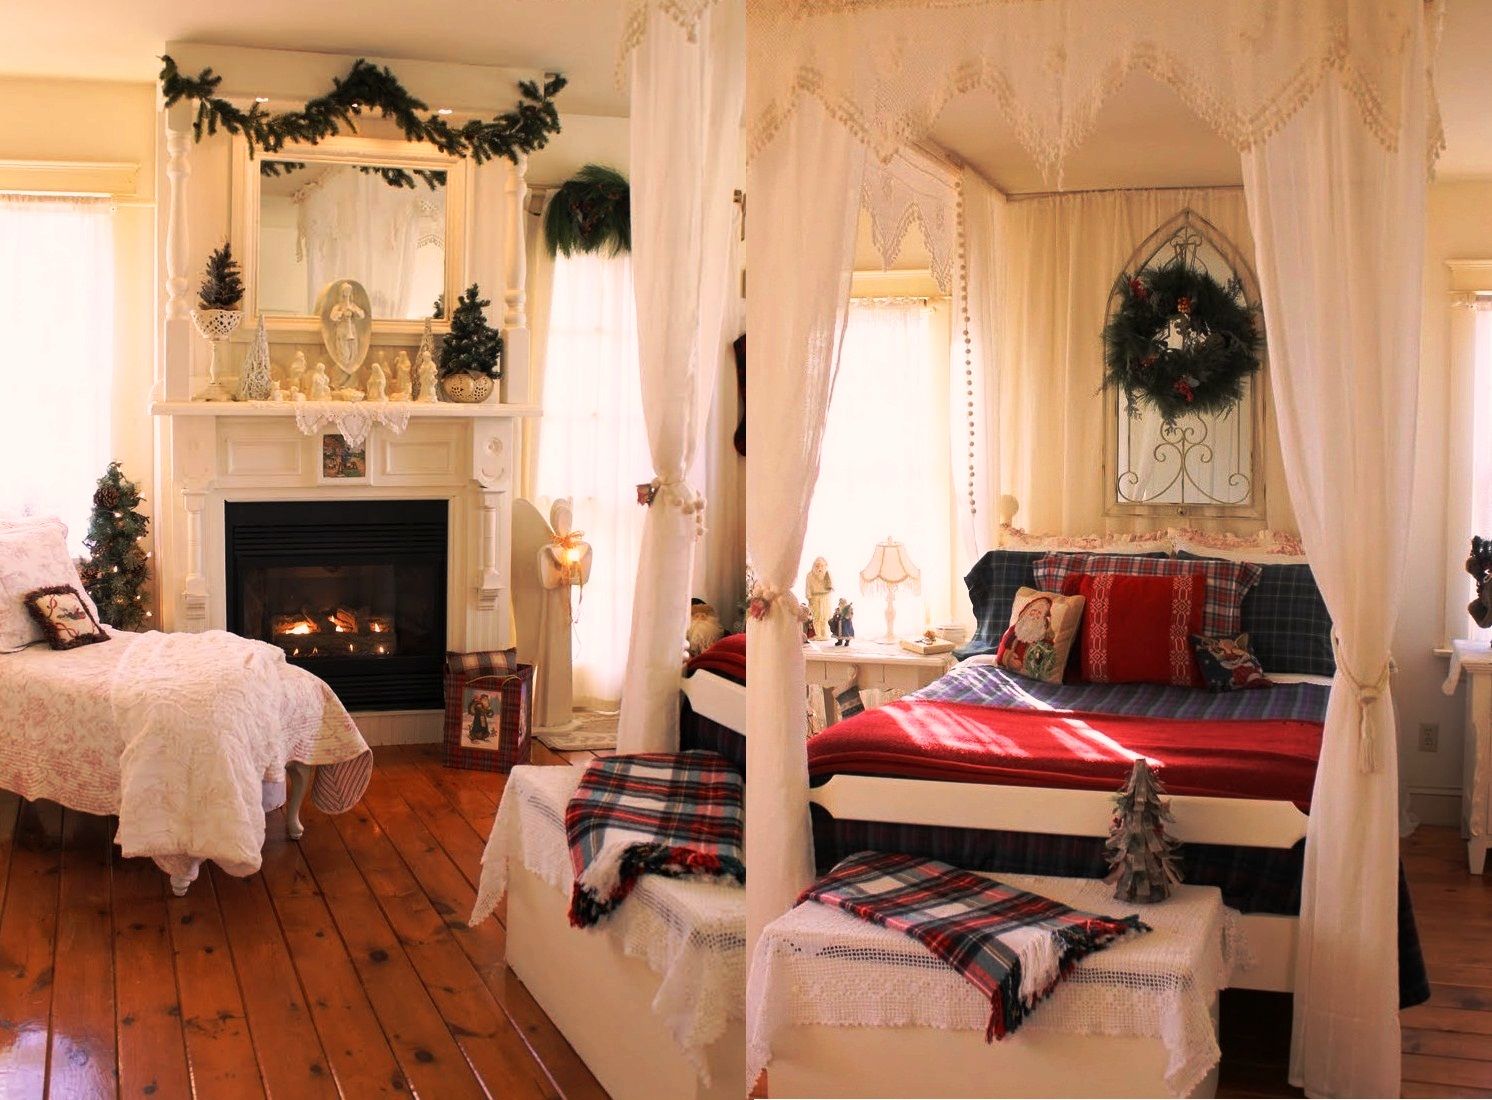 Delightful Holiday Bedroom Decorating Ideas Part - 5: Residence Style